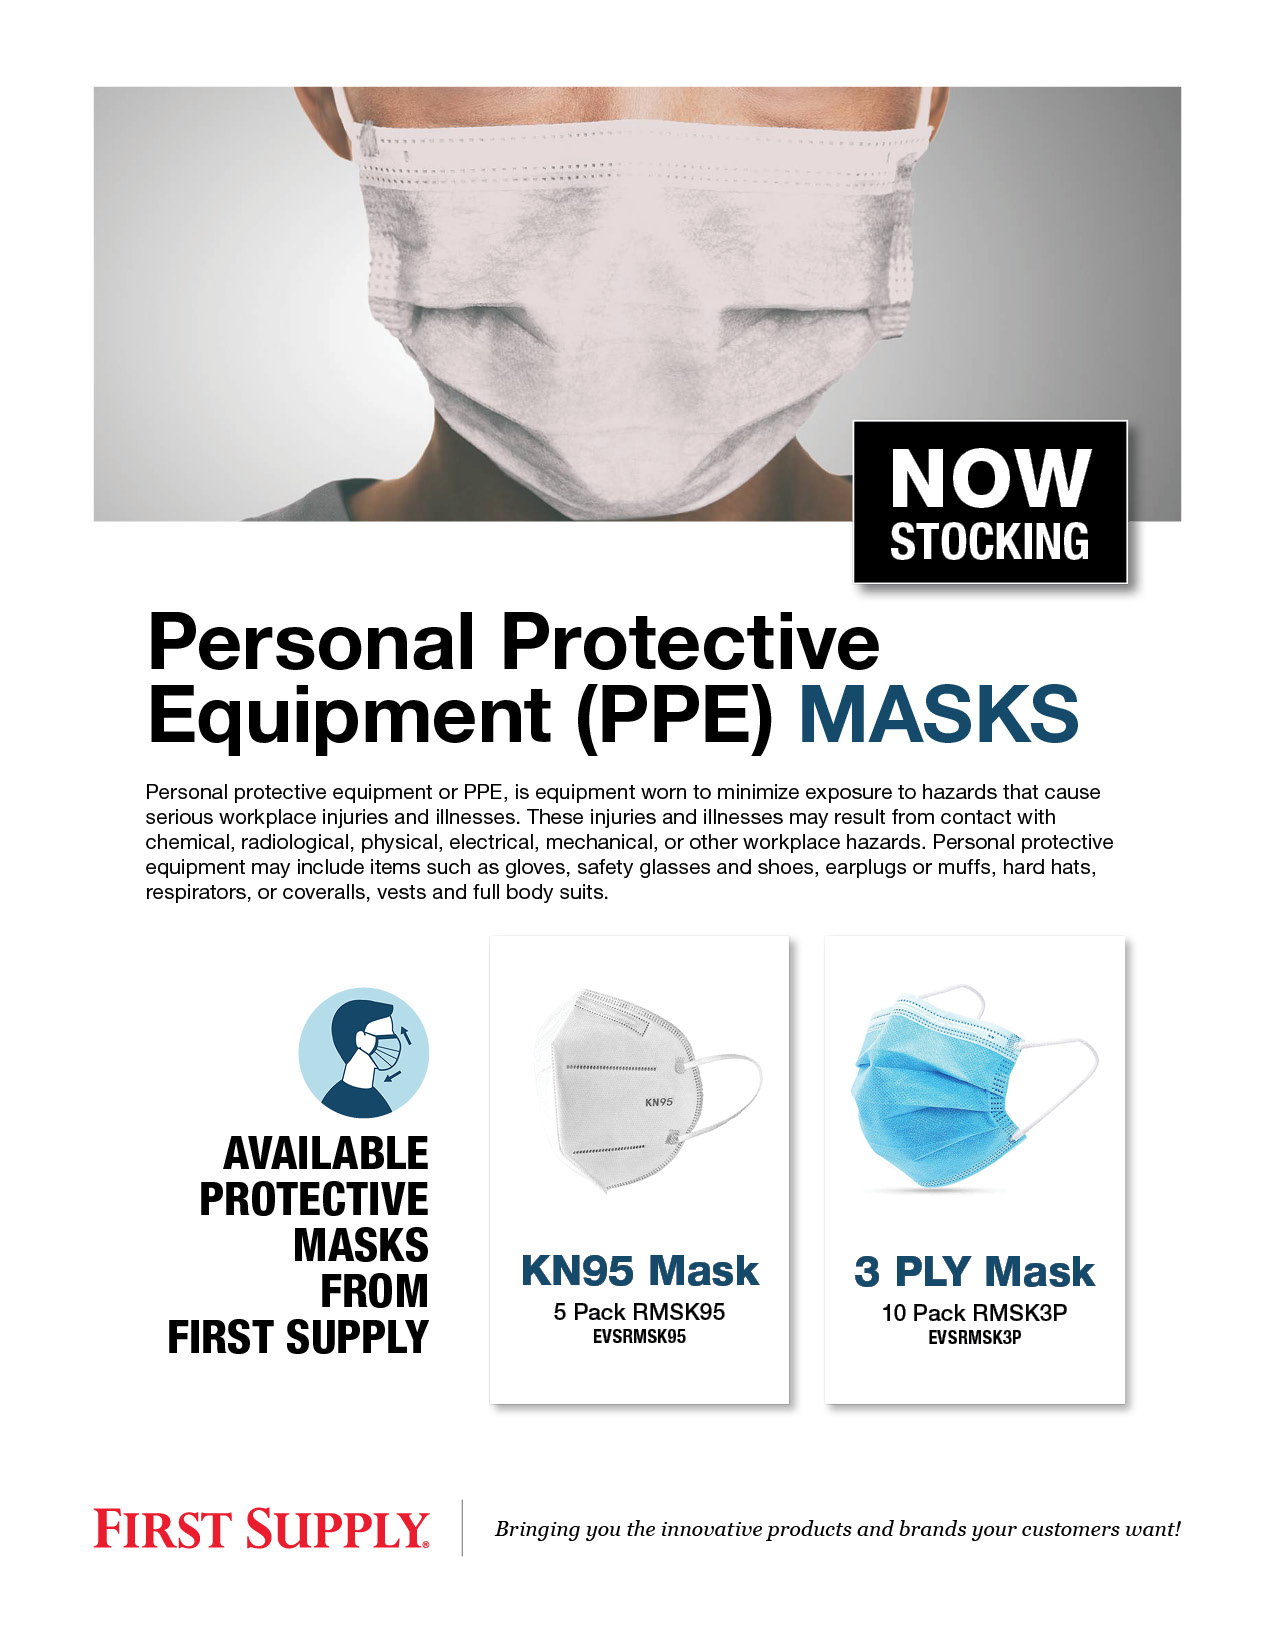 Personal Protective Equipment (PPE) Masks